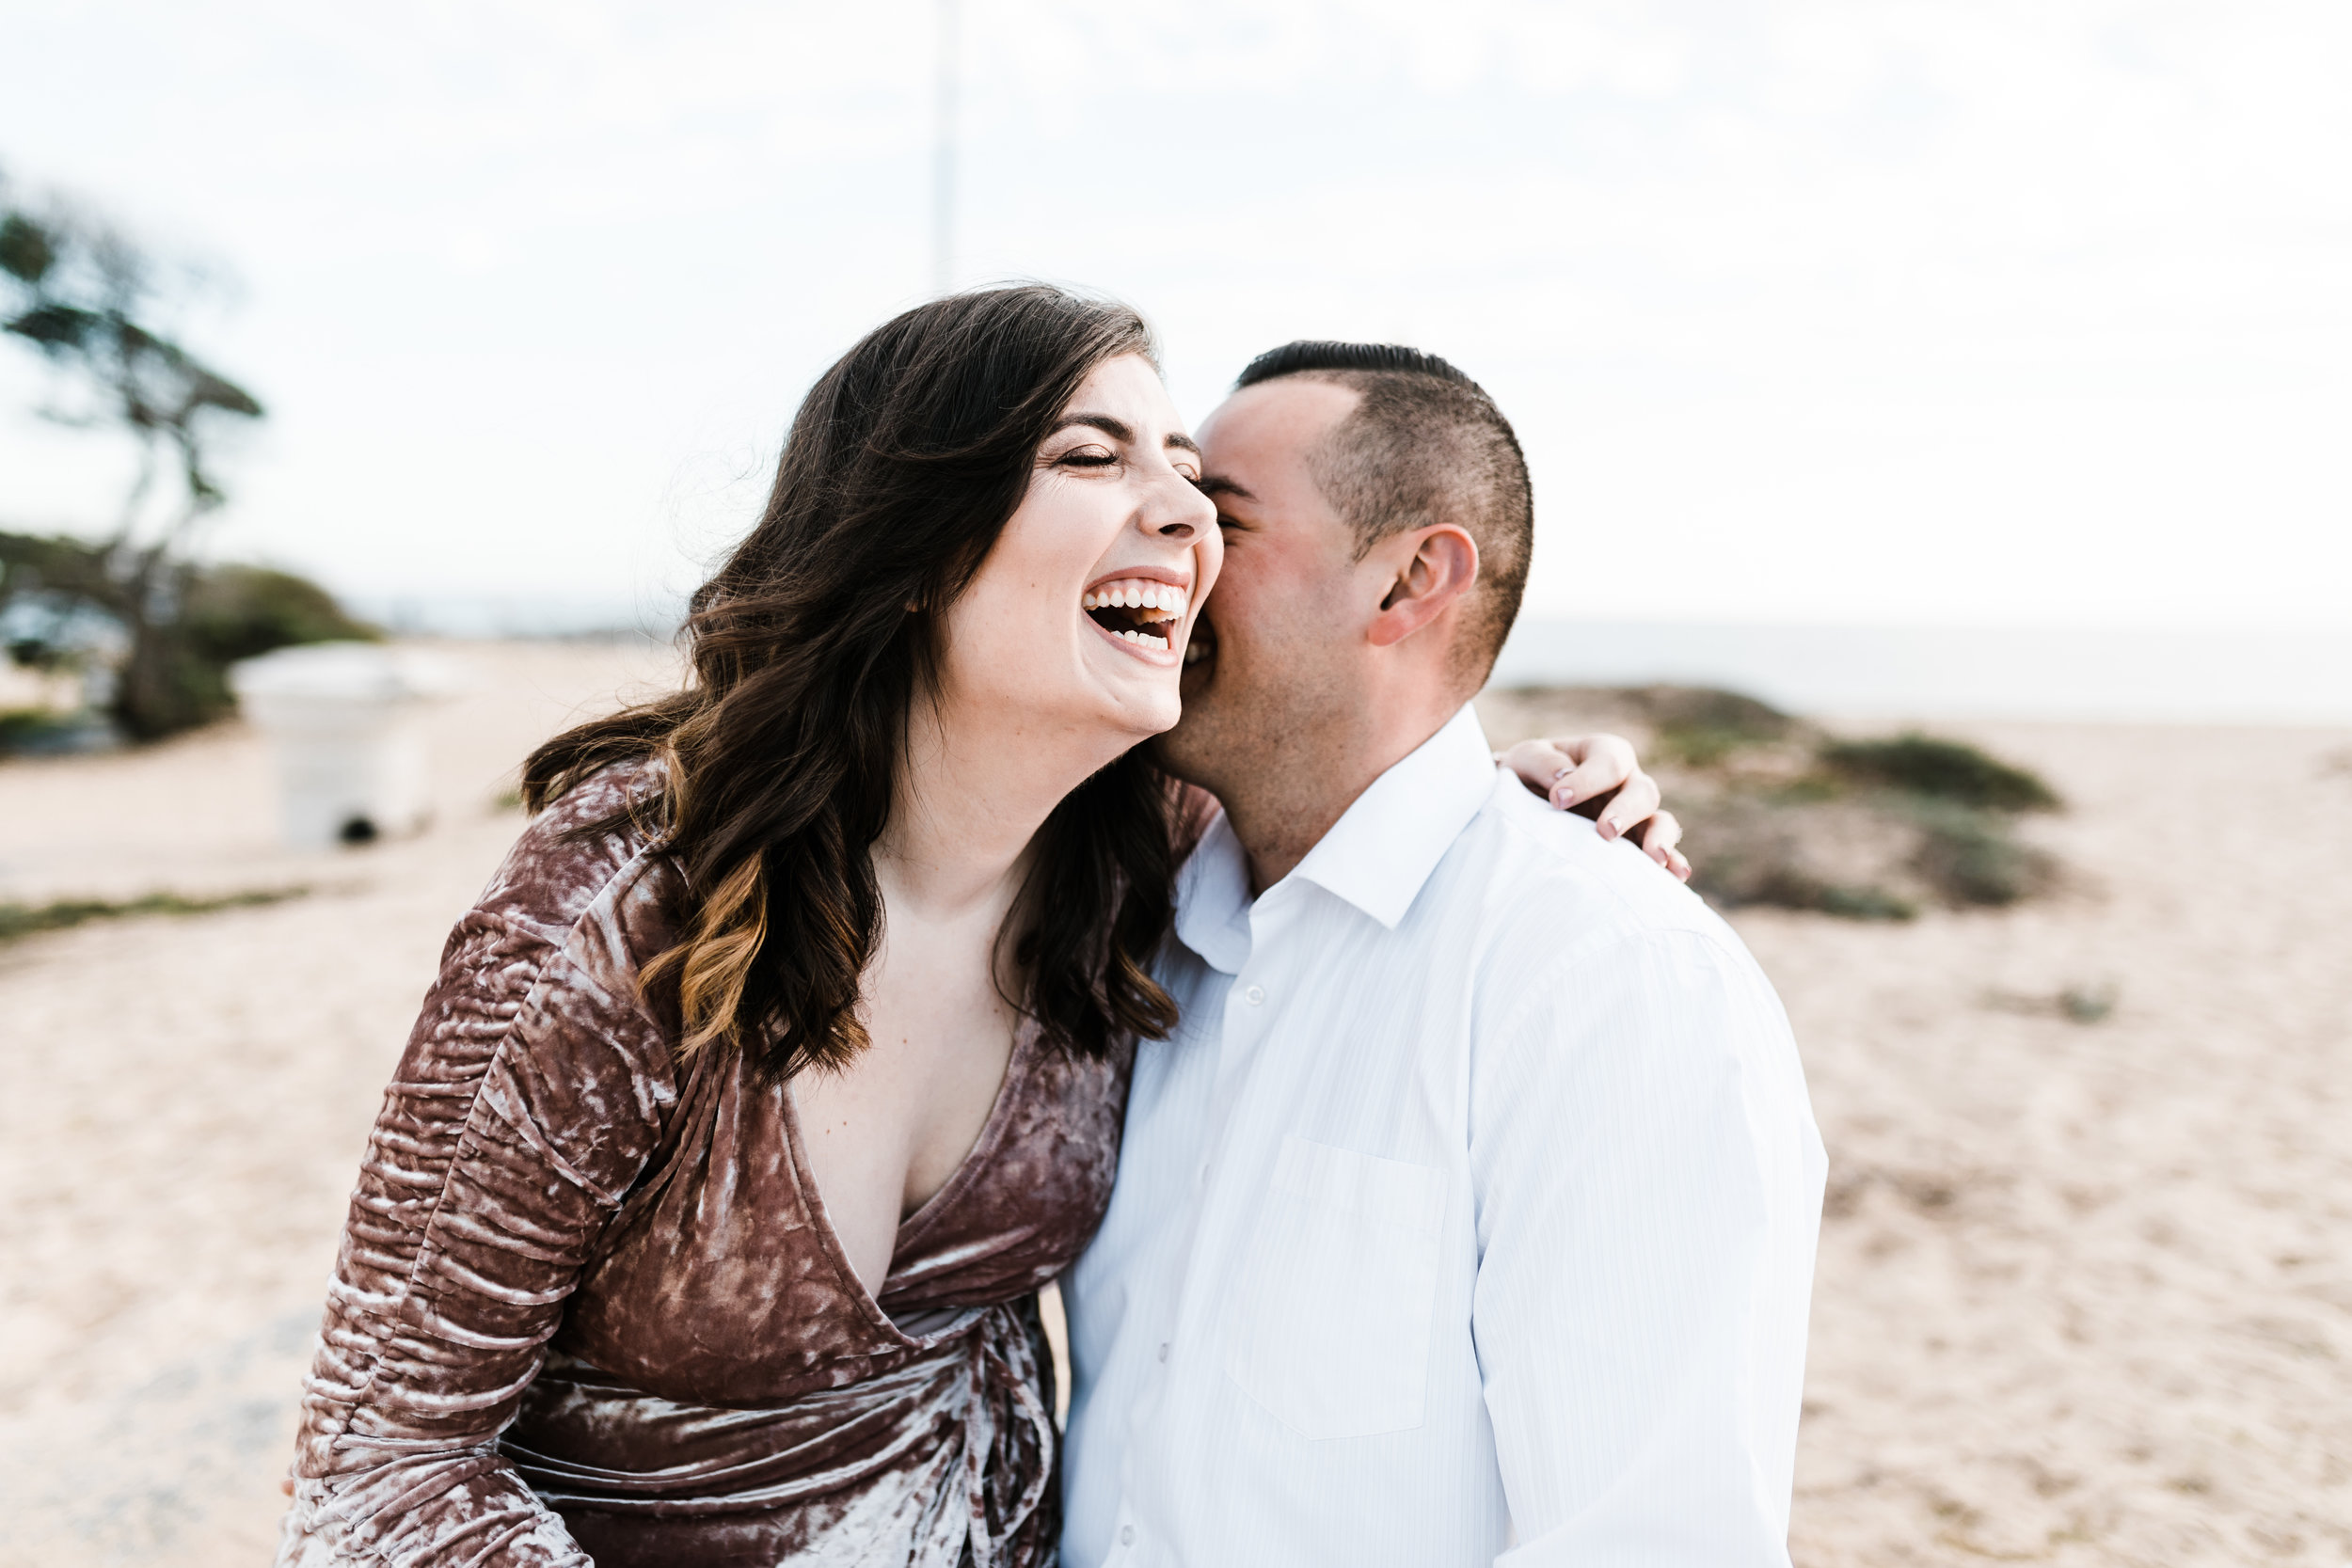 Elise&Julio-The-Wedge-Newport-Beach-CRM-Media-Southern-California-Wedding-Photographer-30